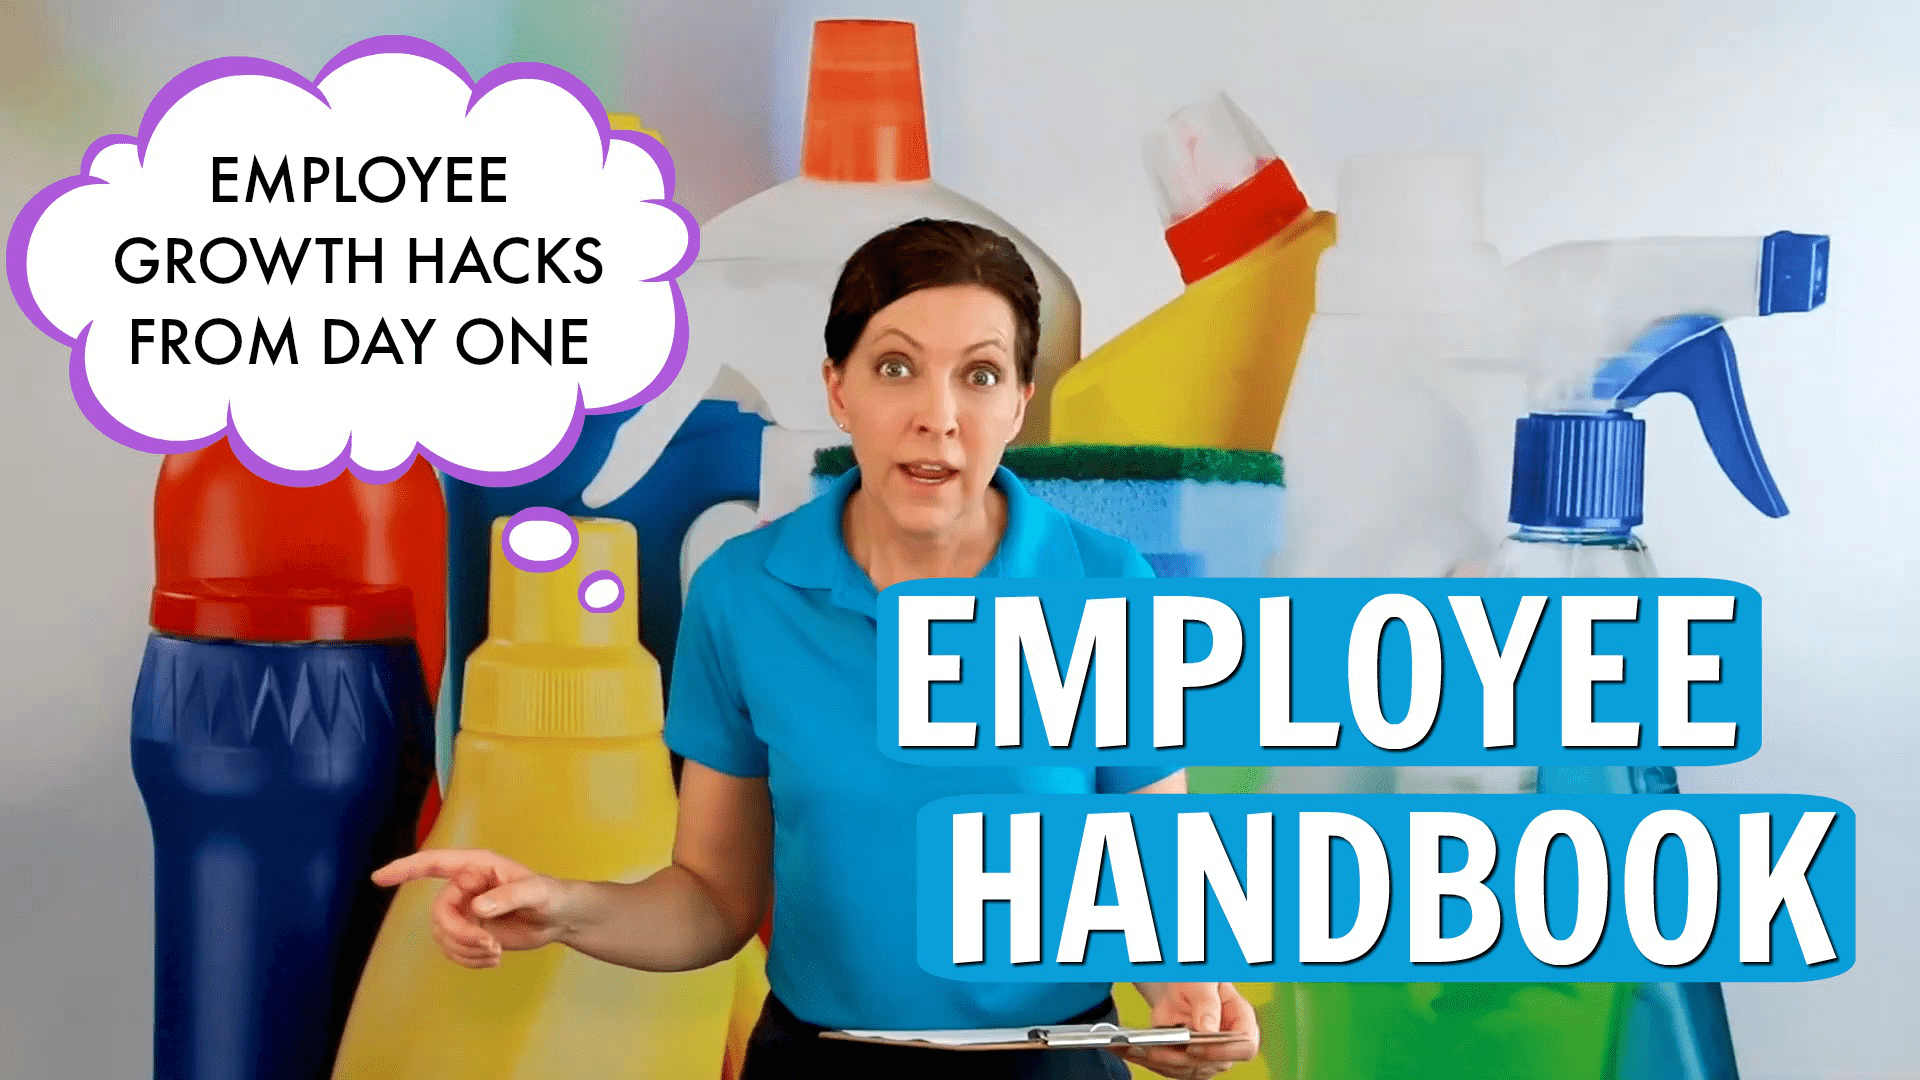 Employee Handbook, Savvy Cleaner, featured image